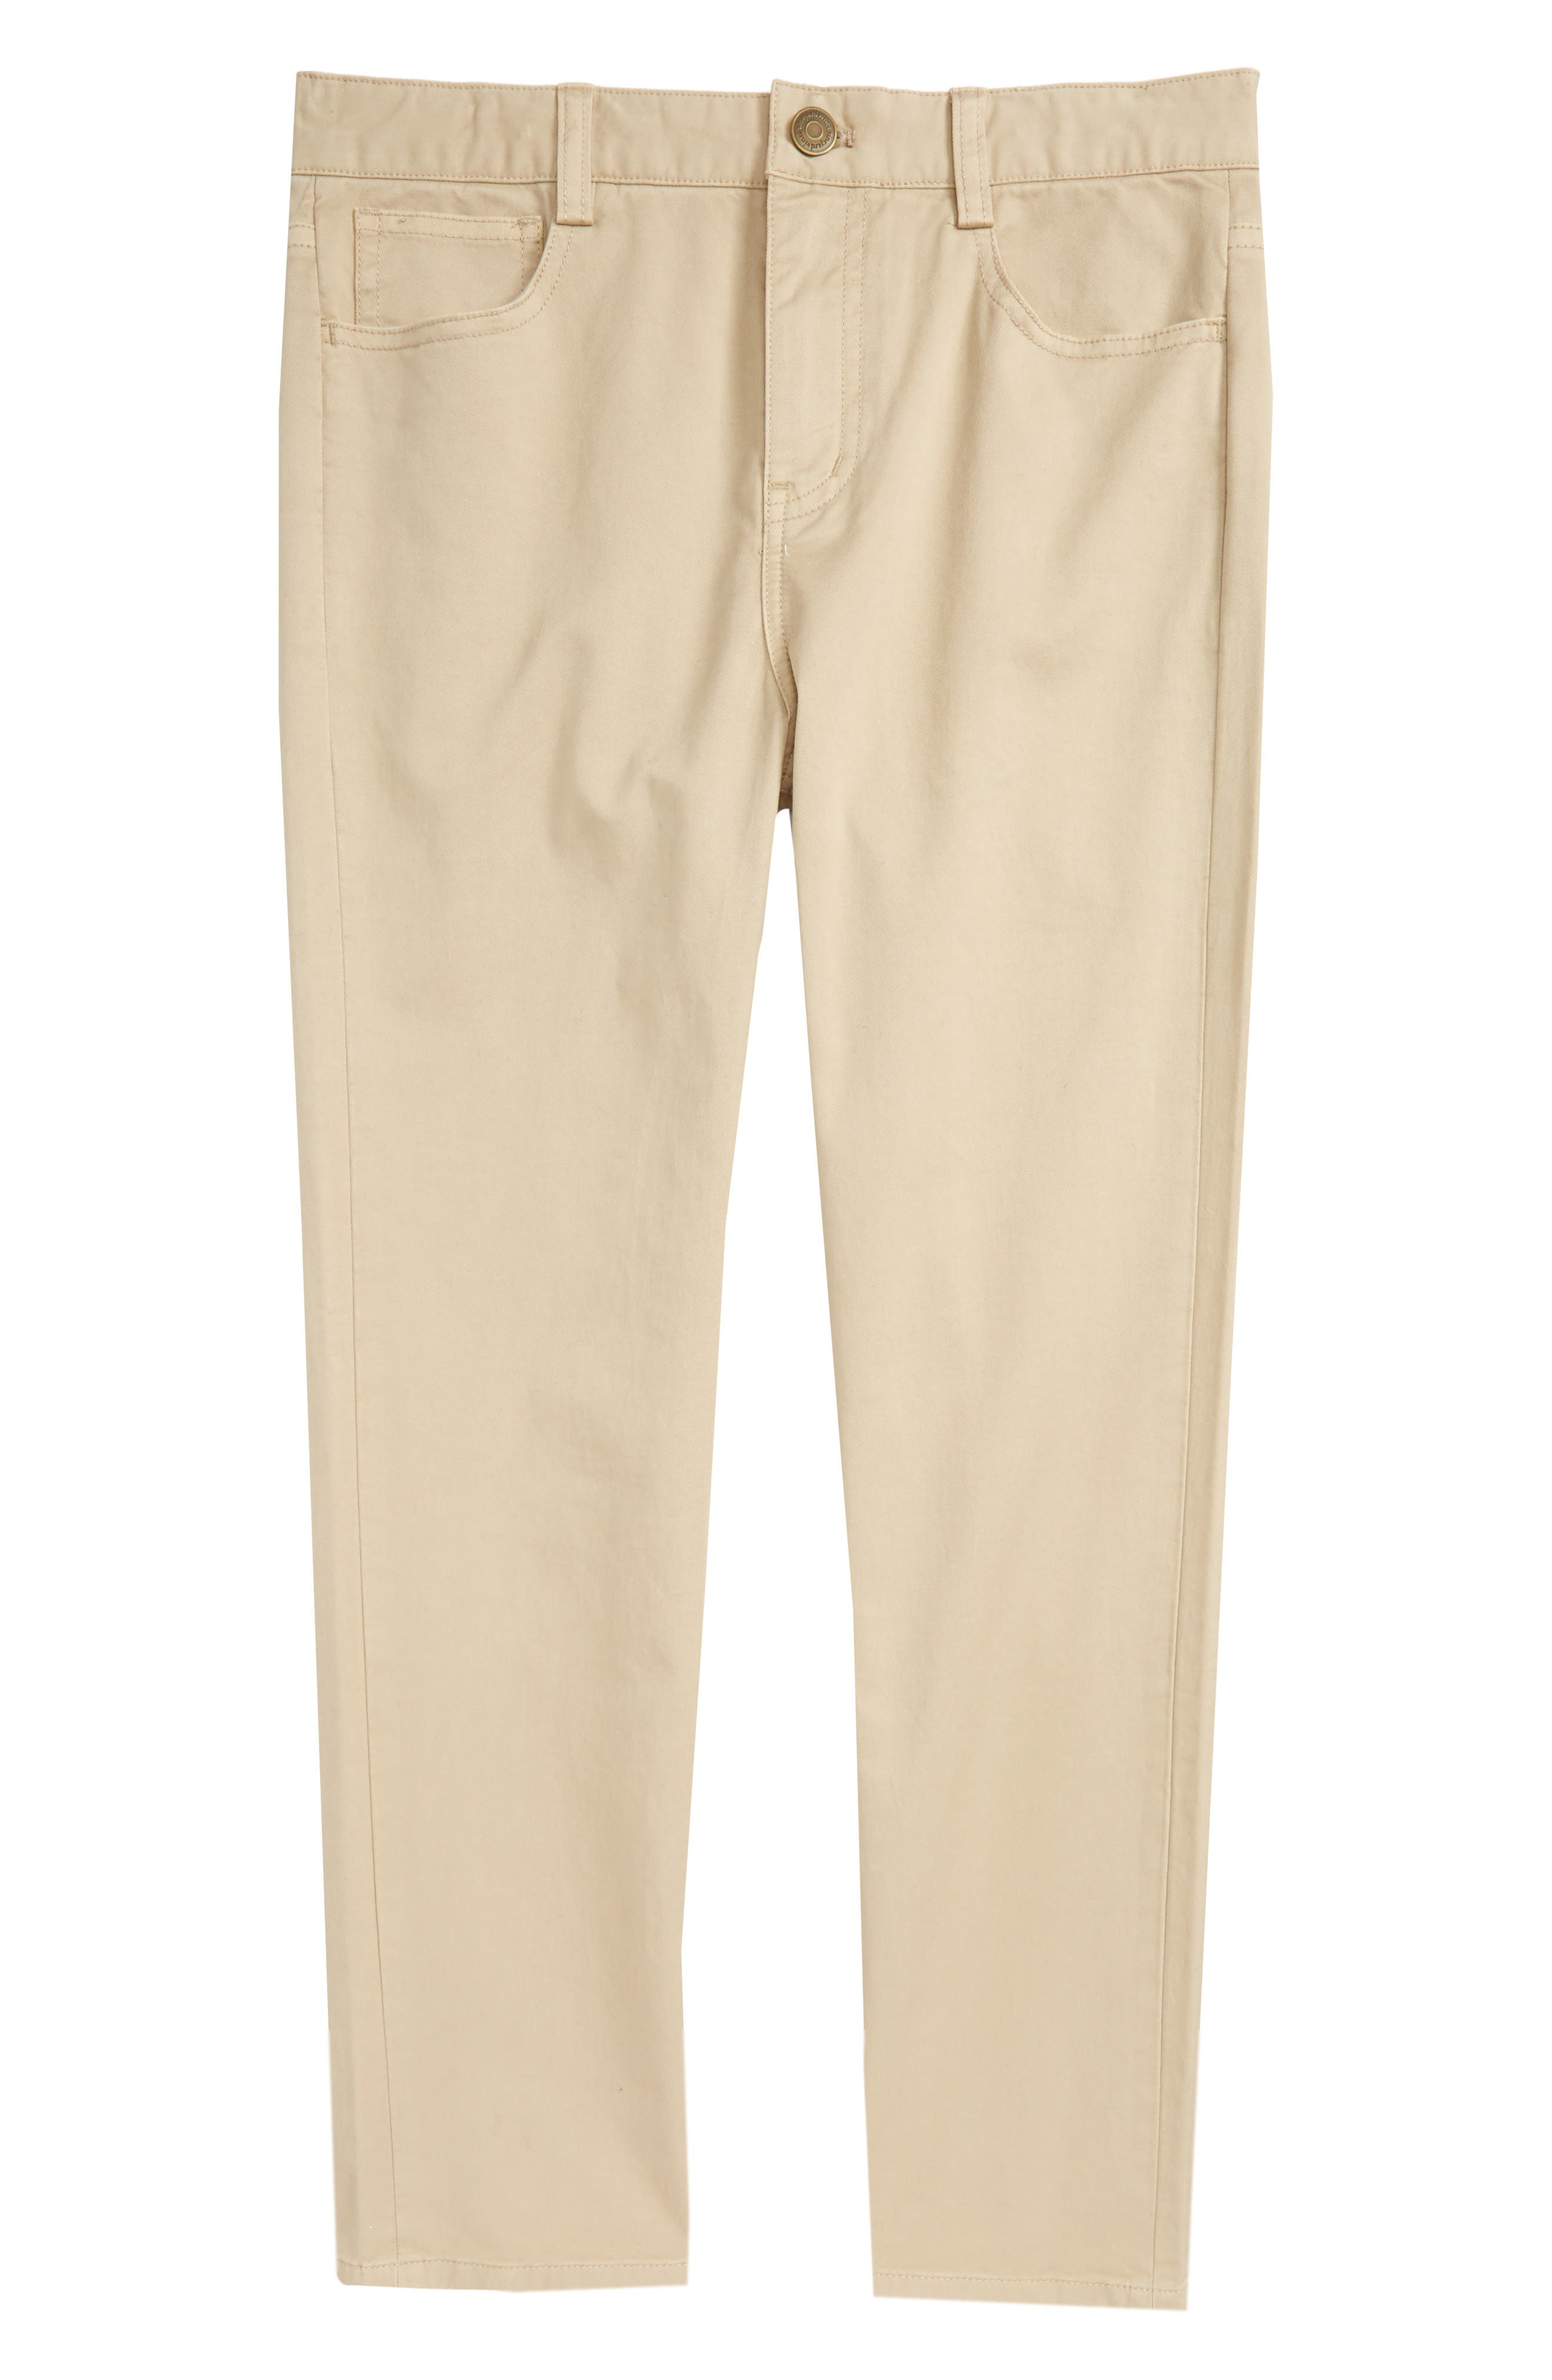 Stretch Twill Pants,                         Main,                         color,